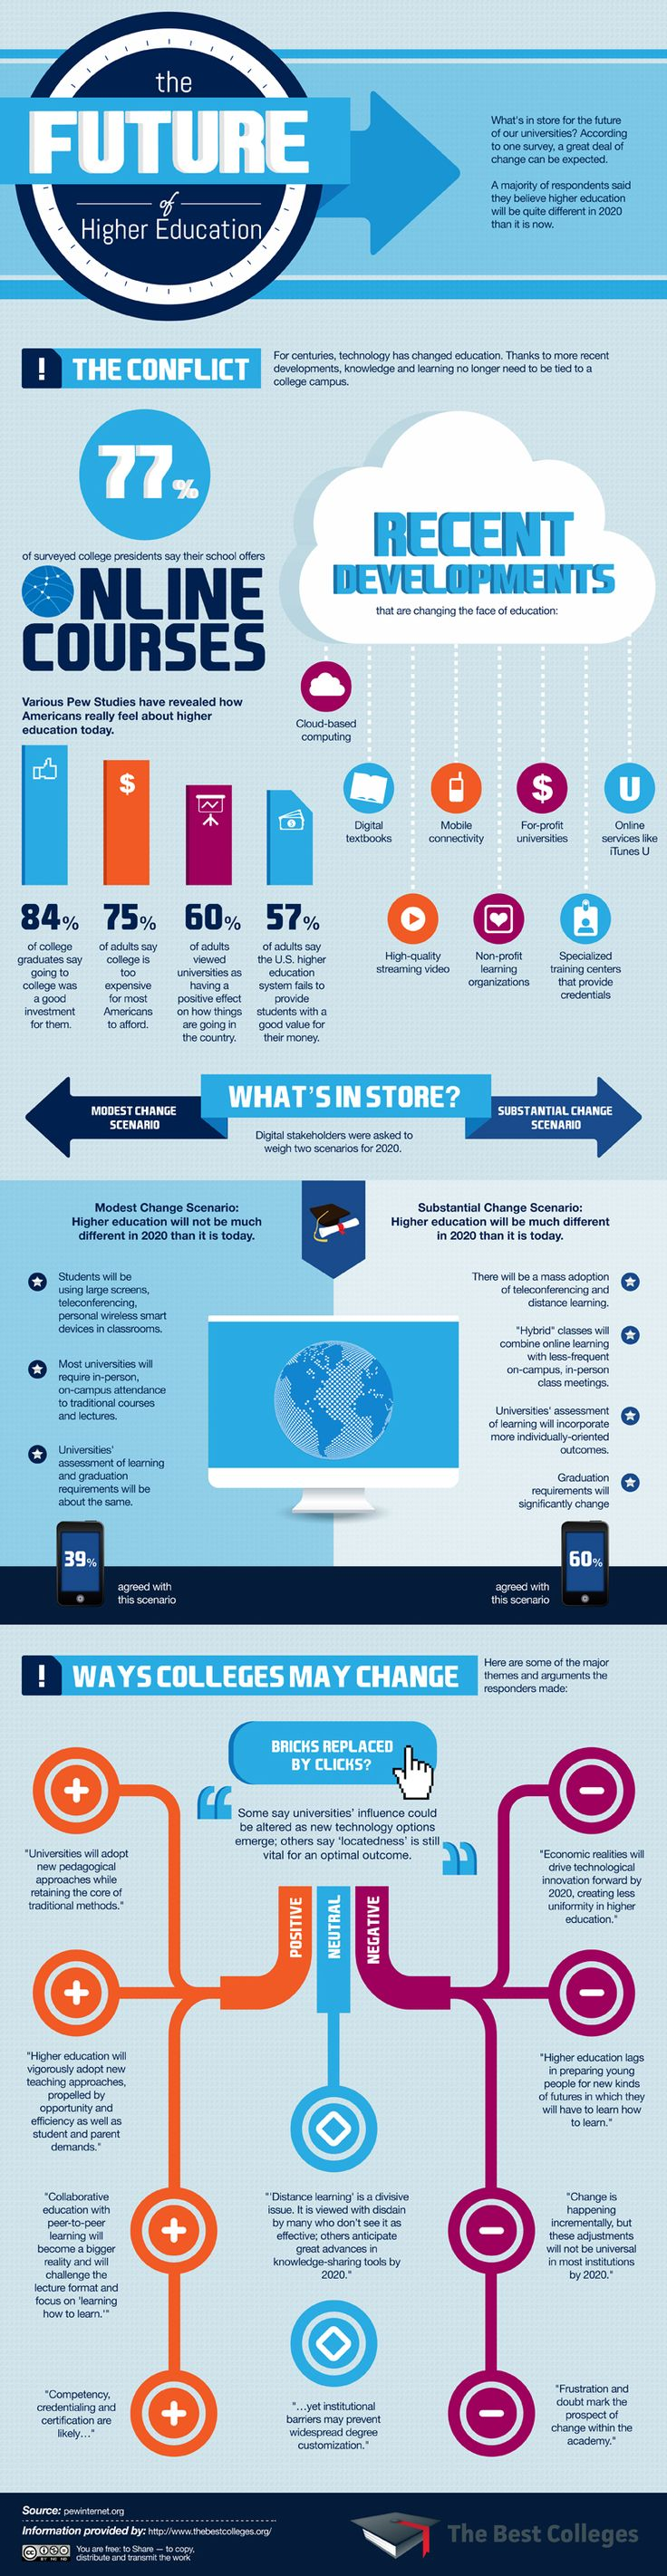 Infographic: The Future of Higher Education